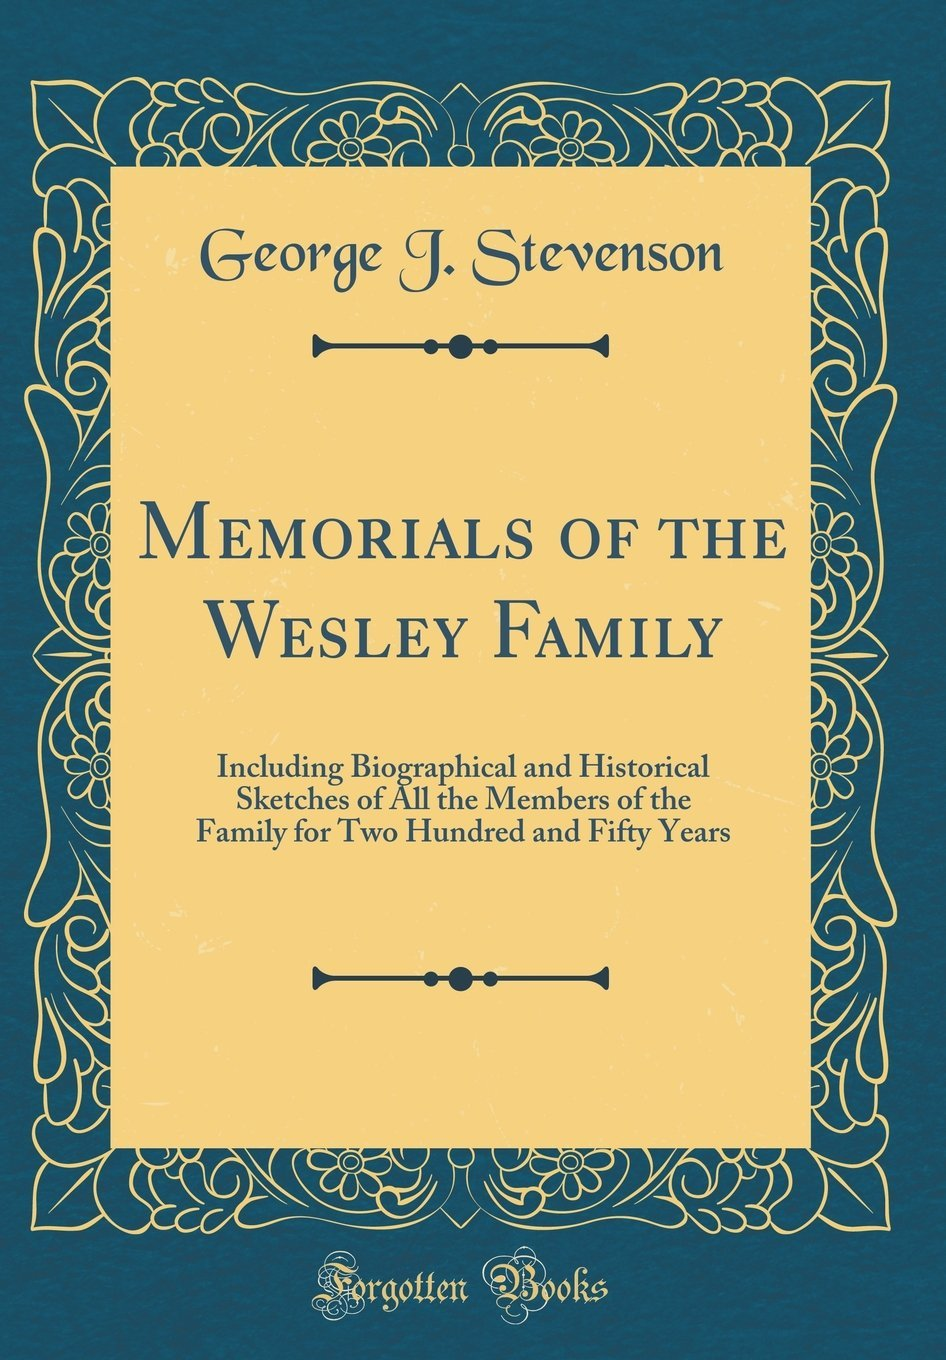 Memorials of the Wesley Family: Including Biographical and Historical Sketches of All the Members of the Family for Two Hundred and Fifty Years (Classic Reprint) pdf